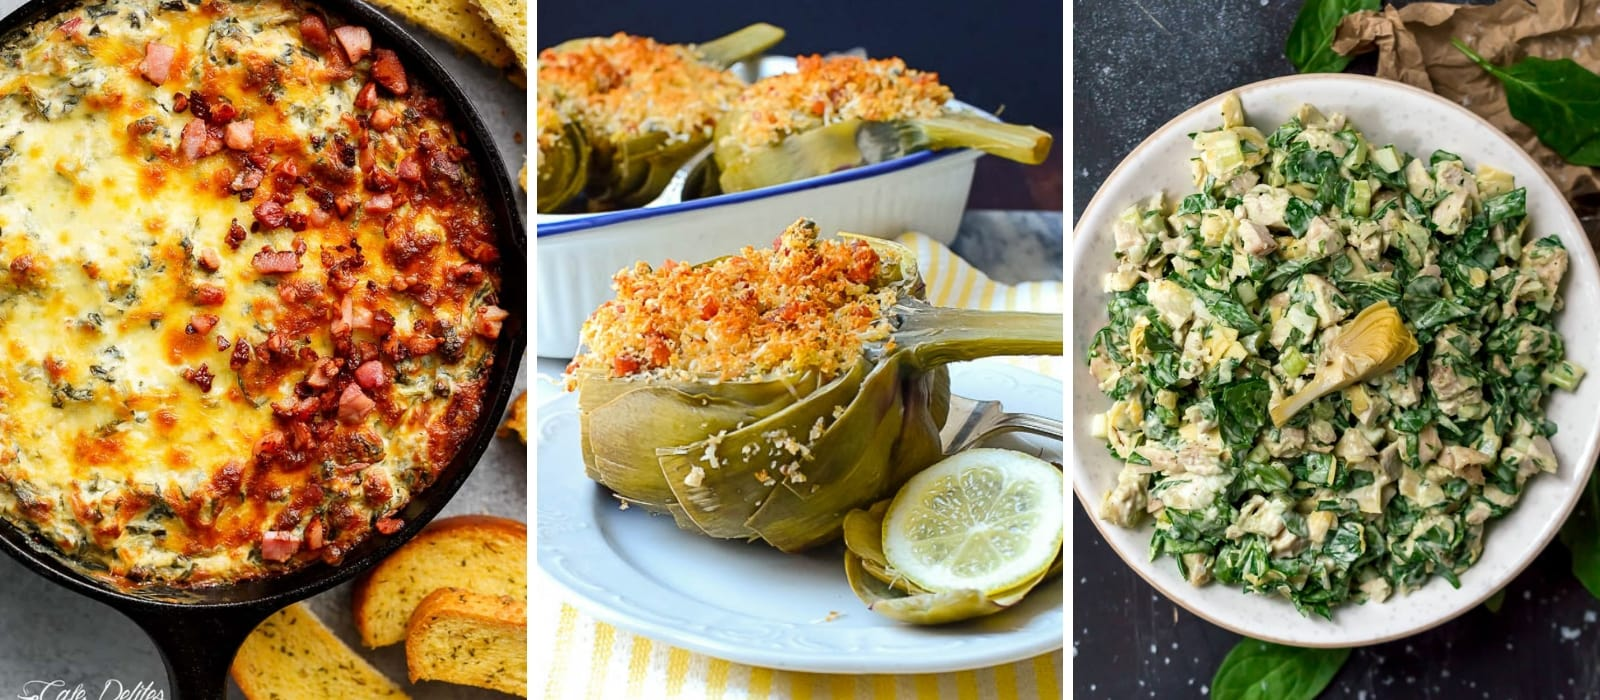 Artichoke Recipes for Wine Tasting